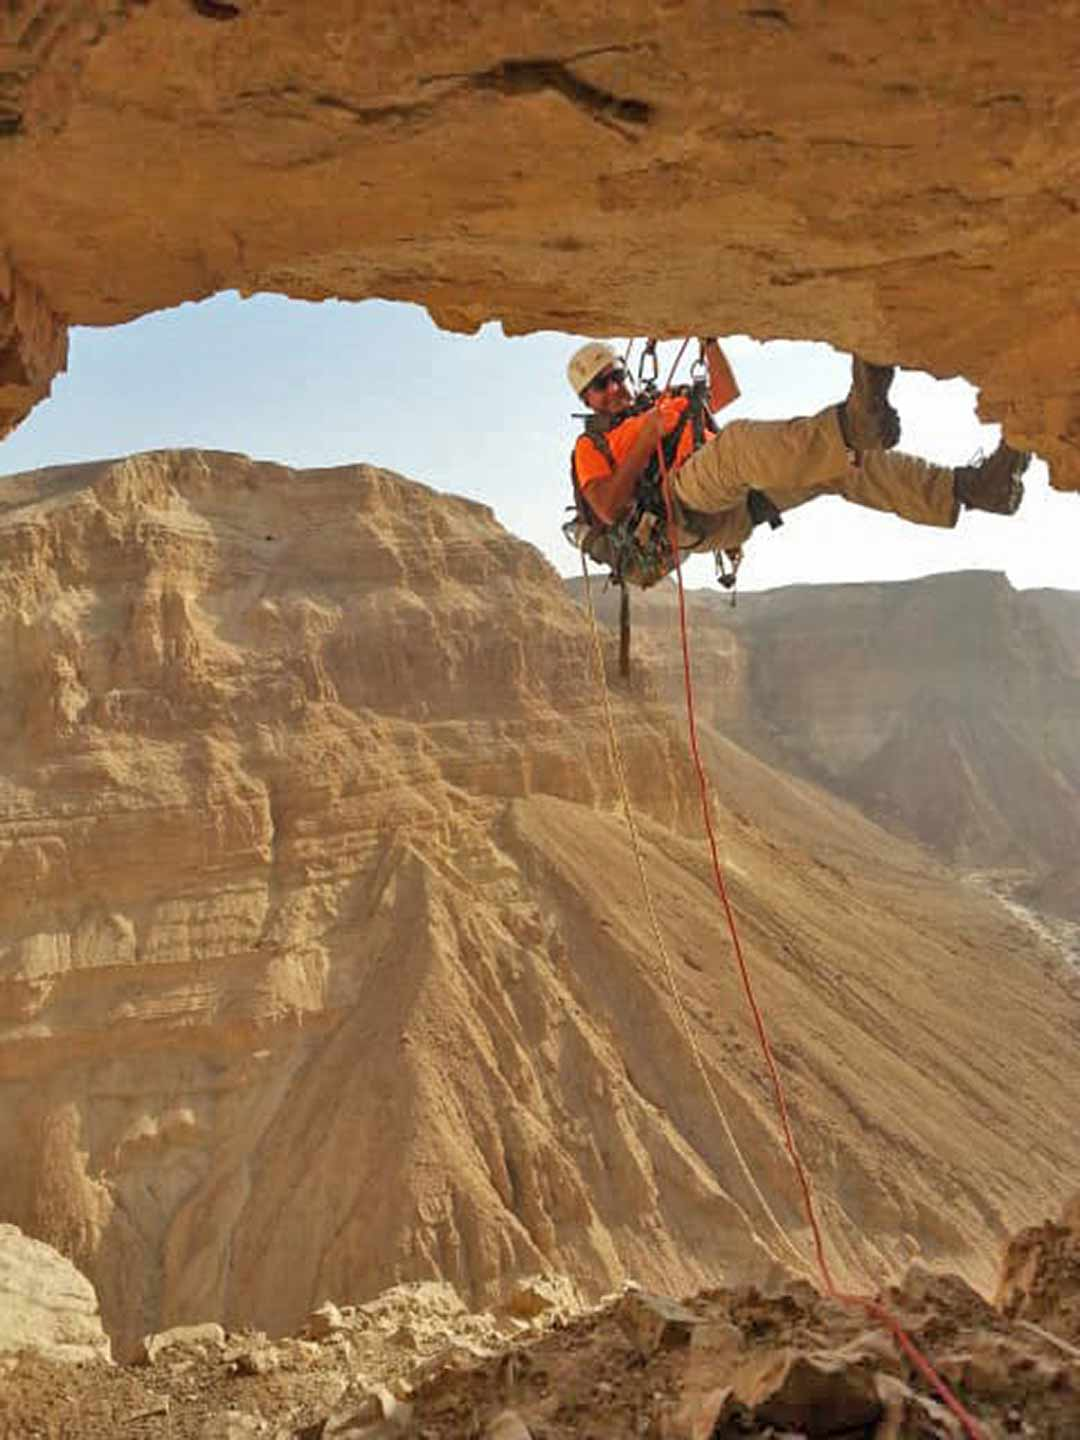 Archaeologist rappelling to explore the caves